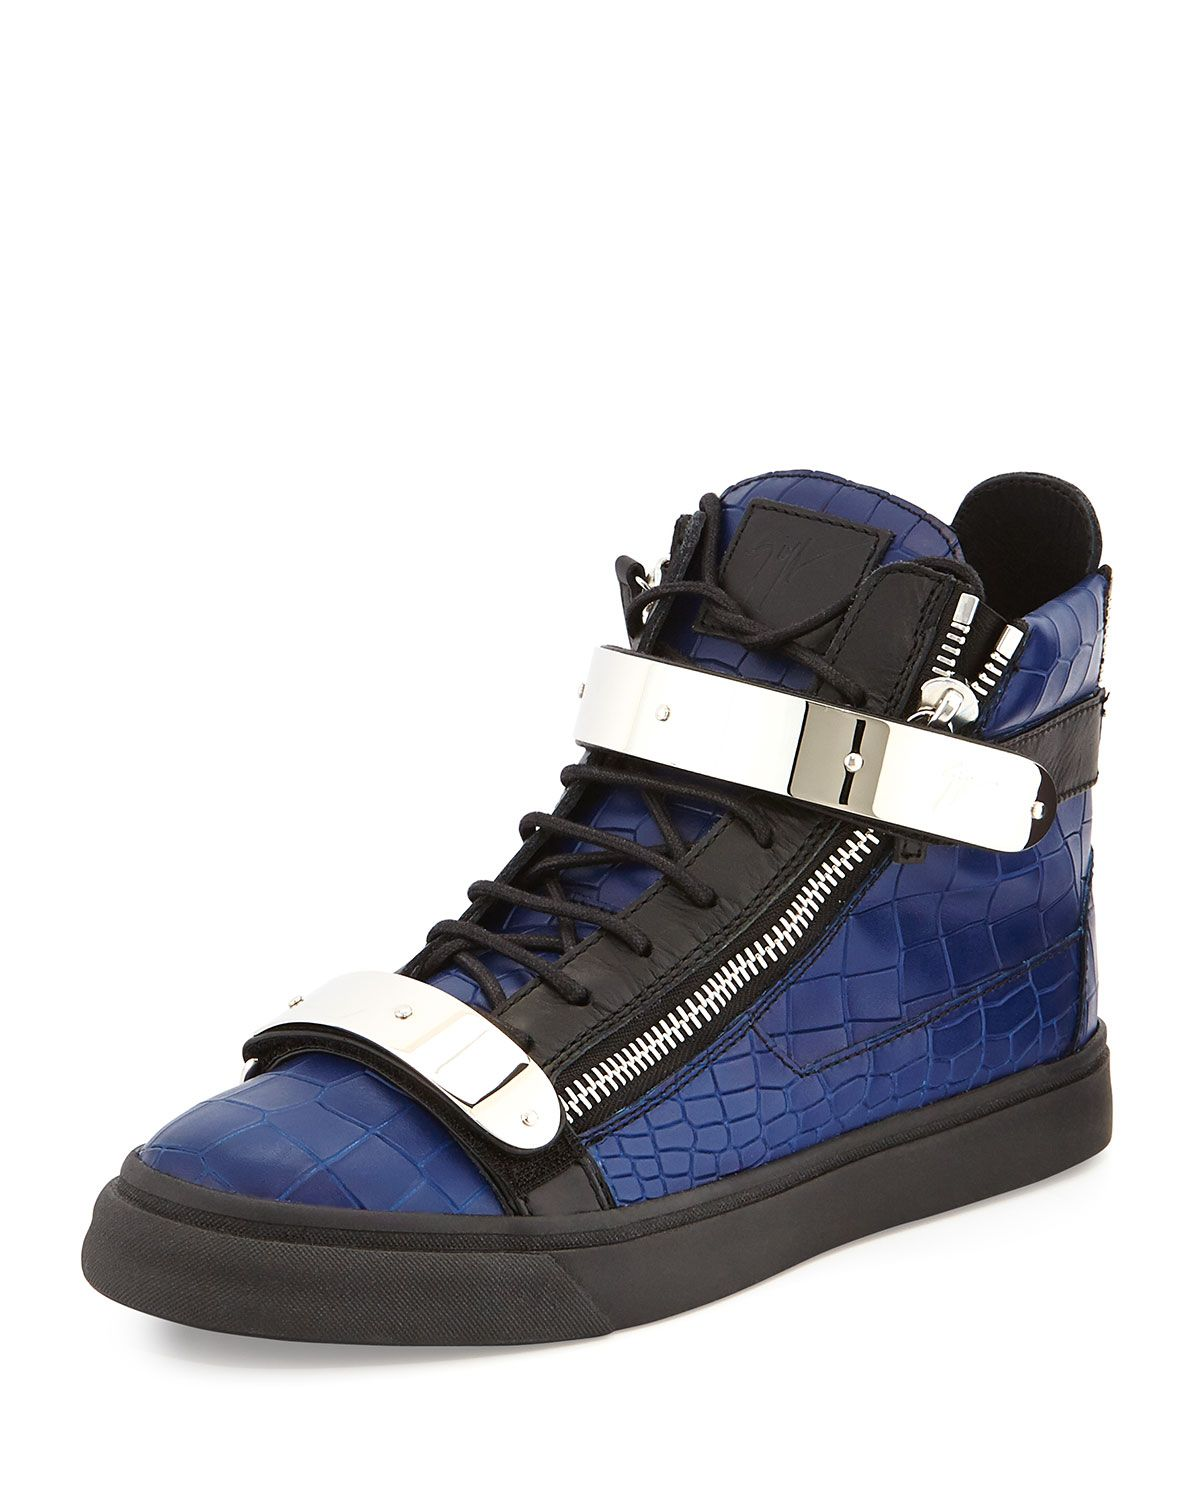 2bf3056e2371 Men s Croc-Embossed High-Top Sneaker